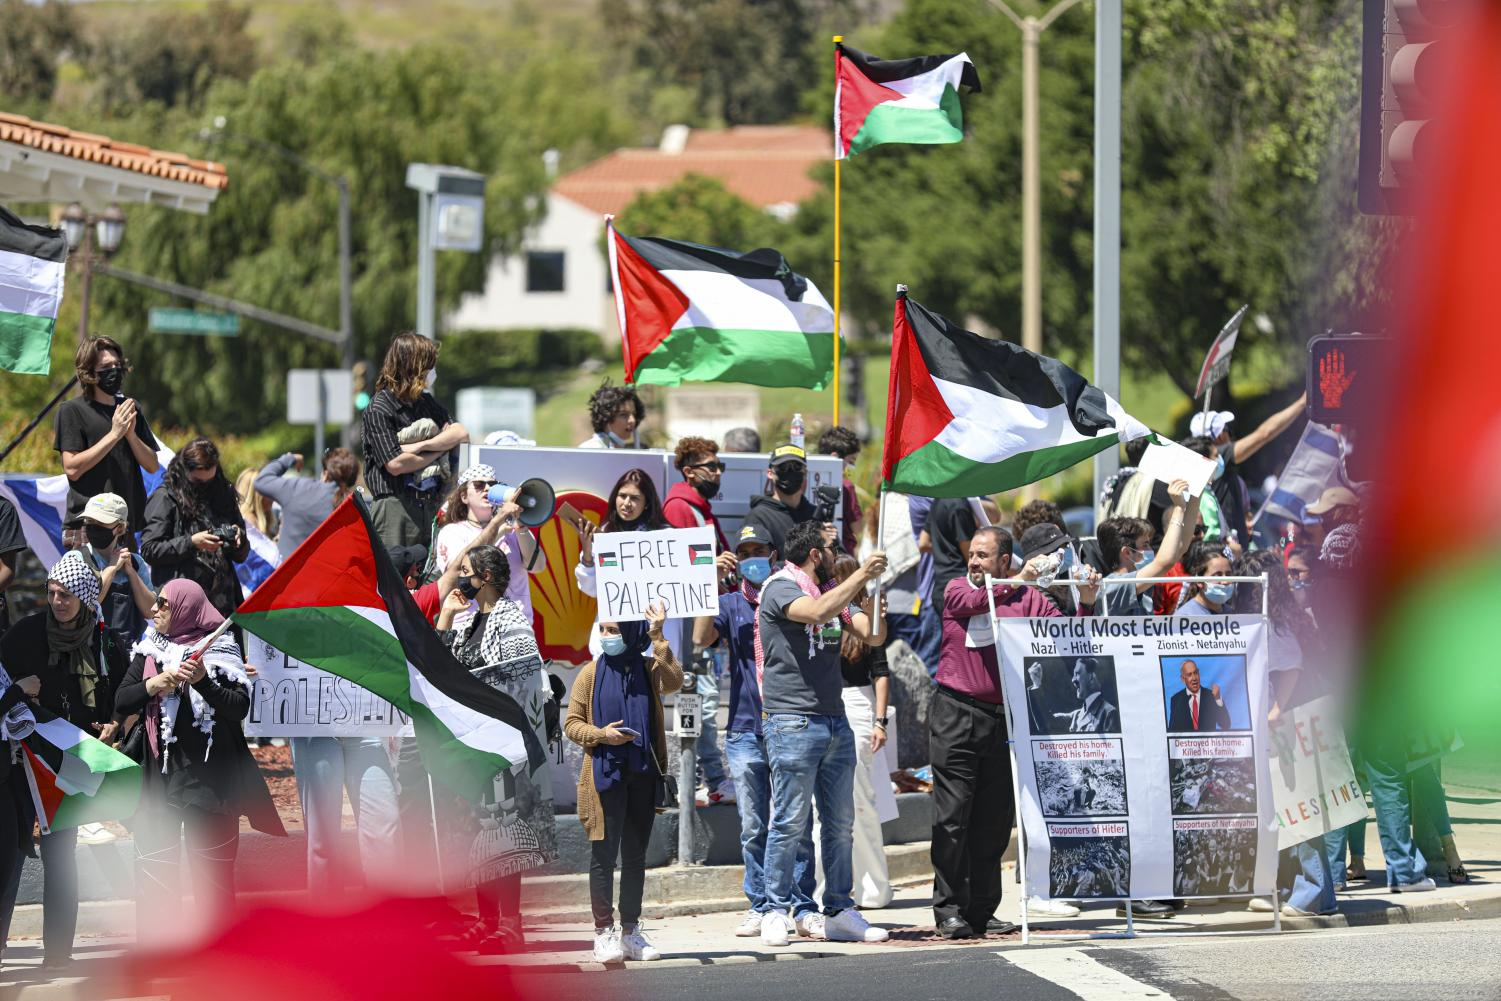 Pro-Palestine protesters hold signs and flags in support of Palestine during a protest in Thousand Oaks, CA. on Sunday, May 23, 2021.